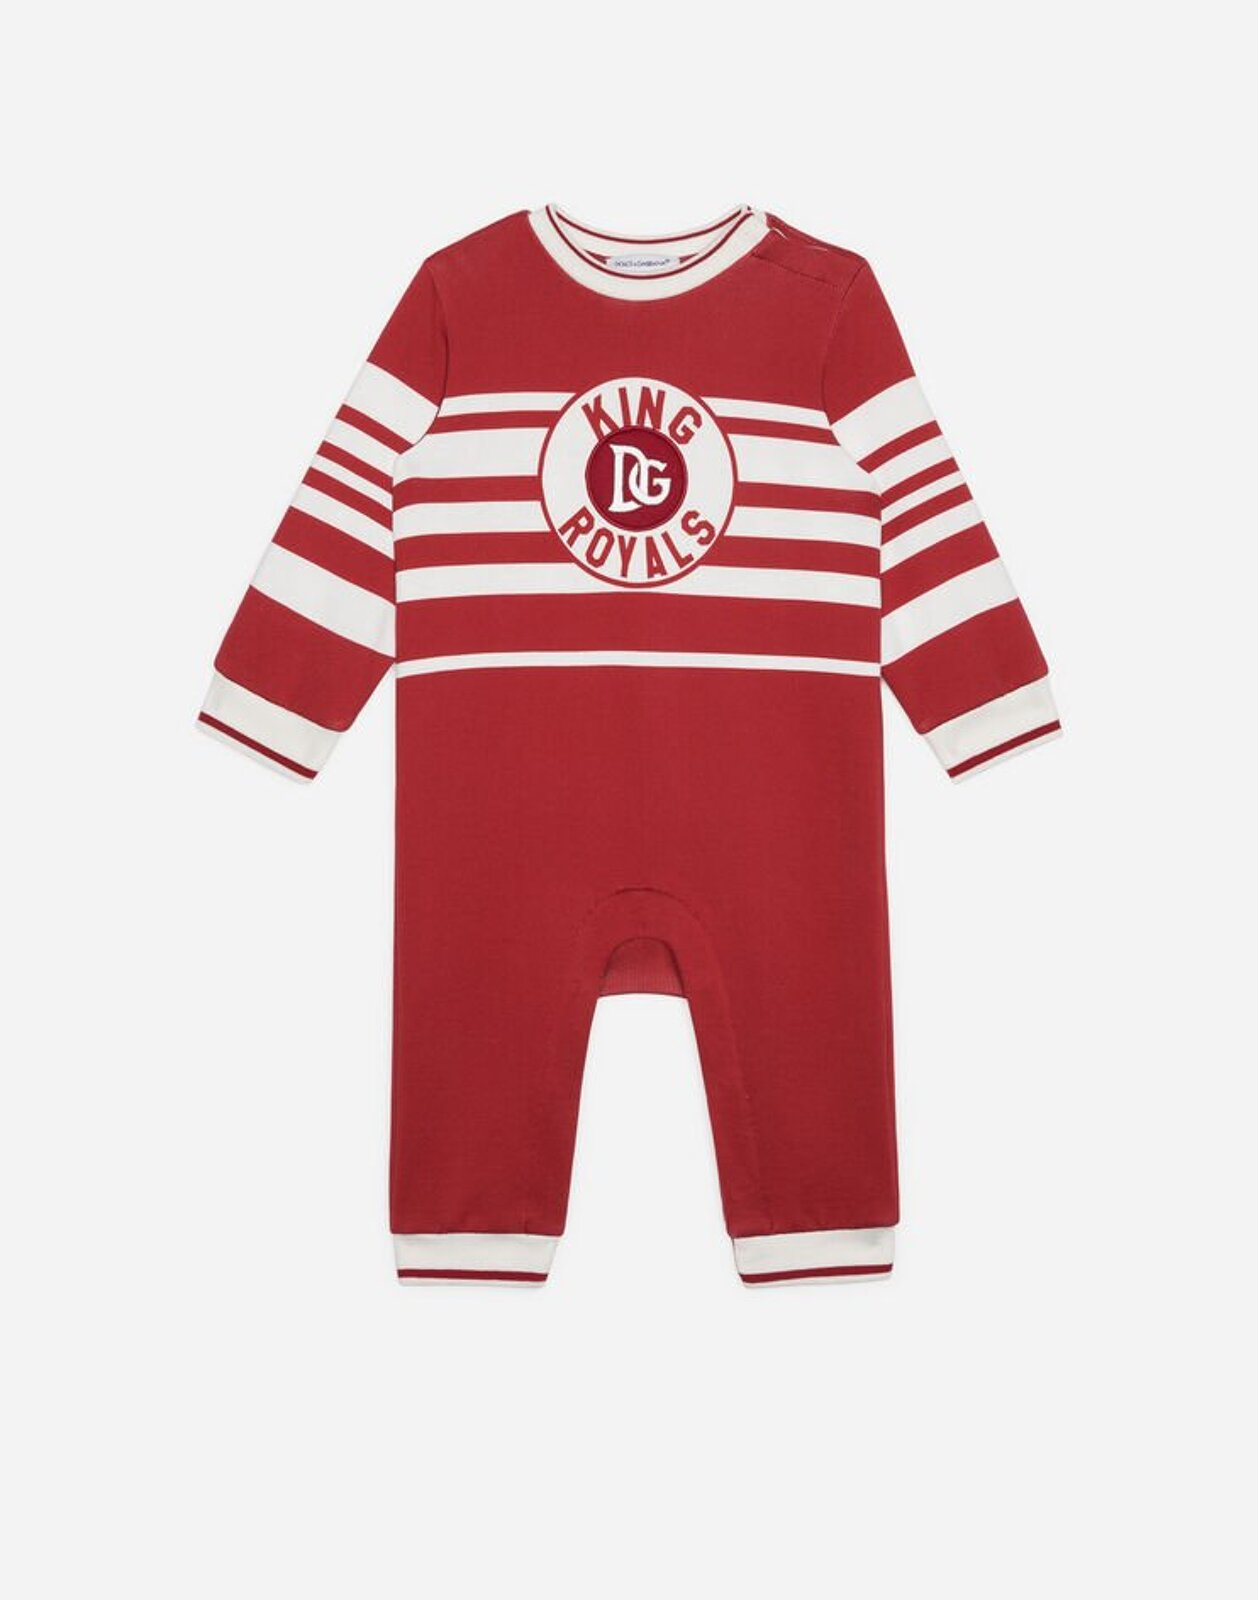 Tutina In Jersey Stampa King Royals - Dolce & Gabbana Junior